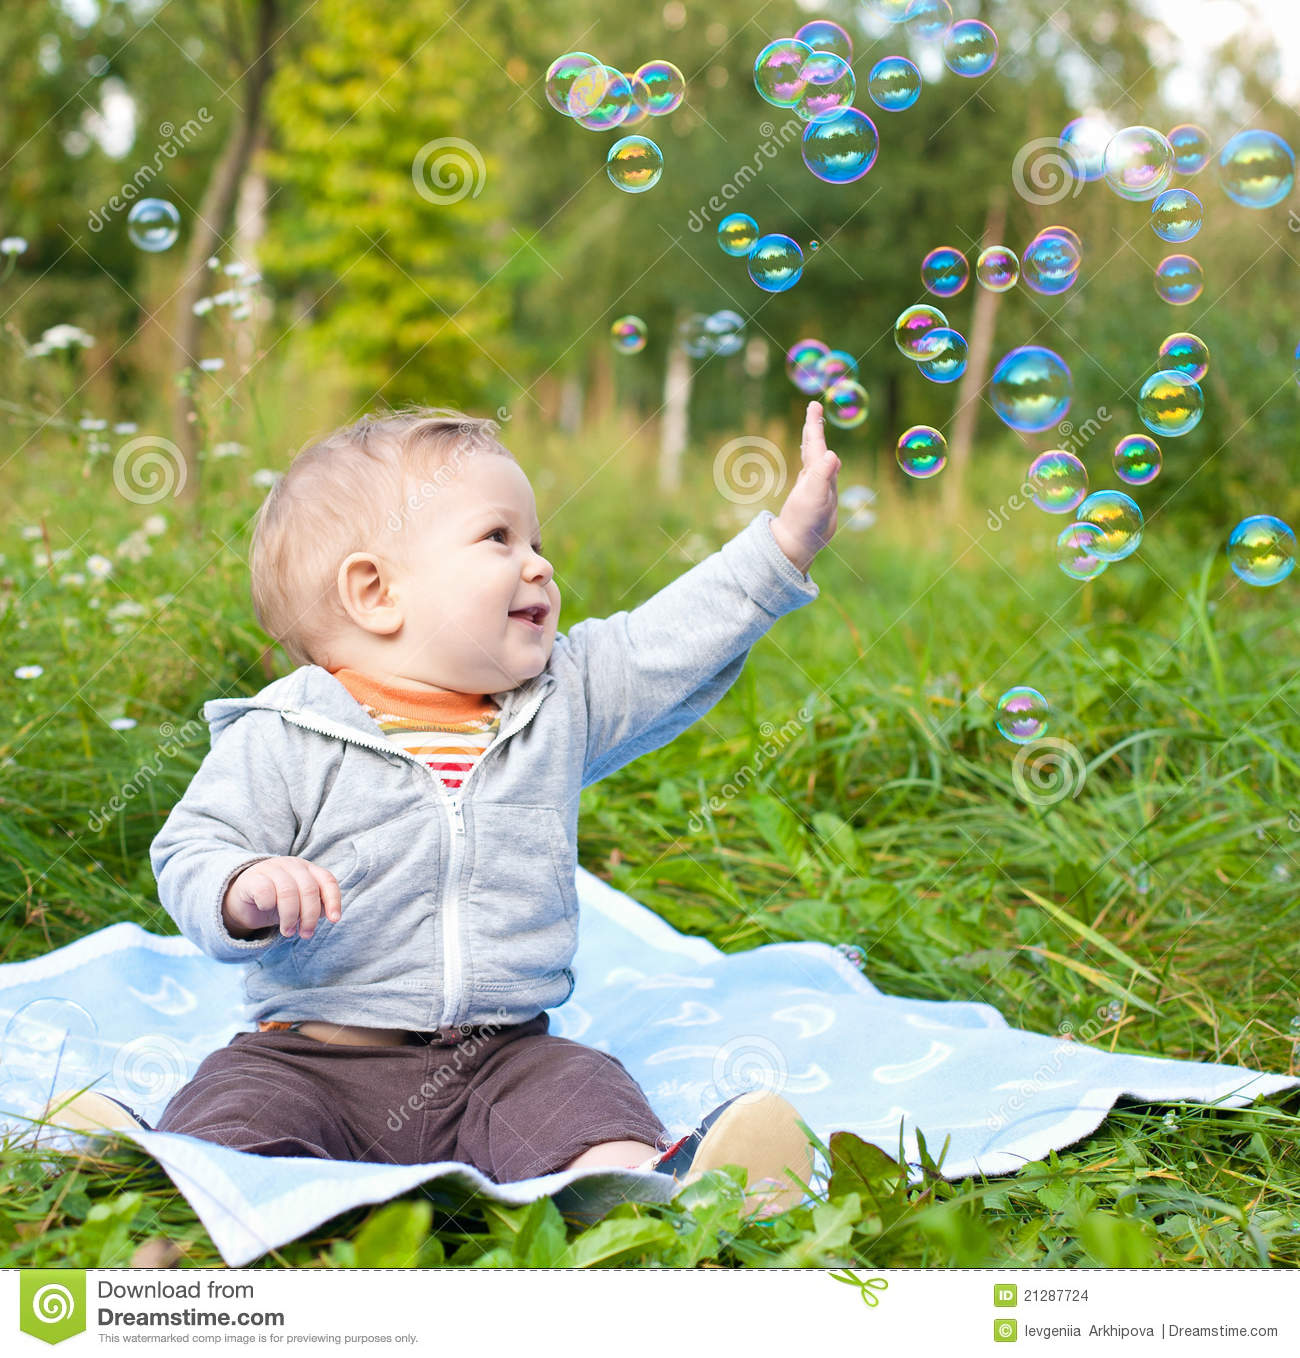 boy-sitting-grass-playing-soap-bubbles-21287724.jpg